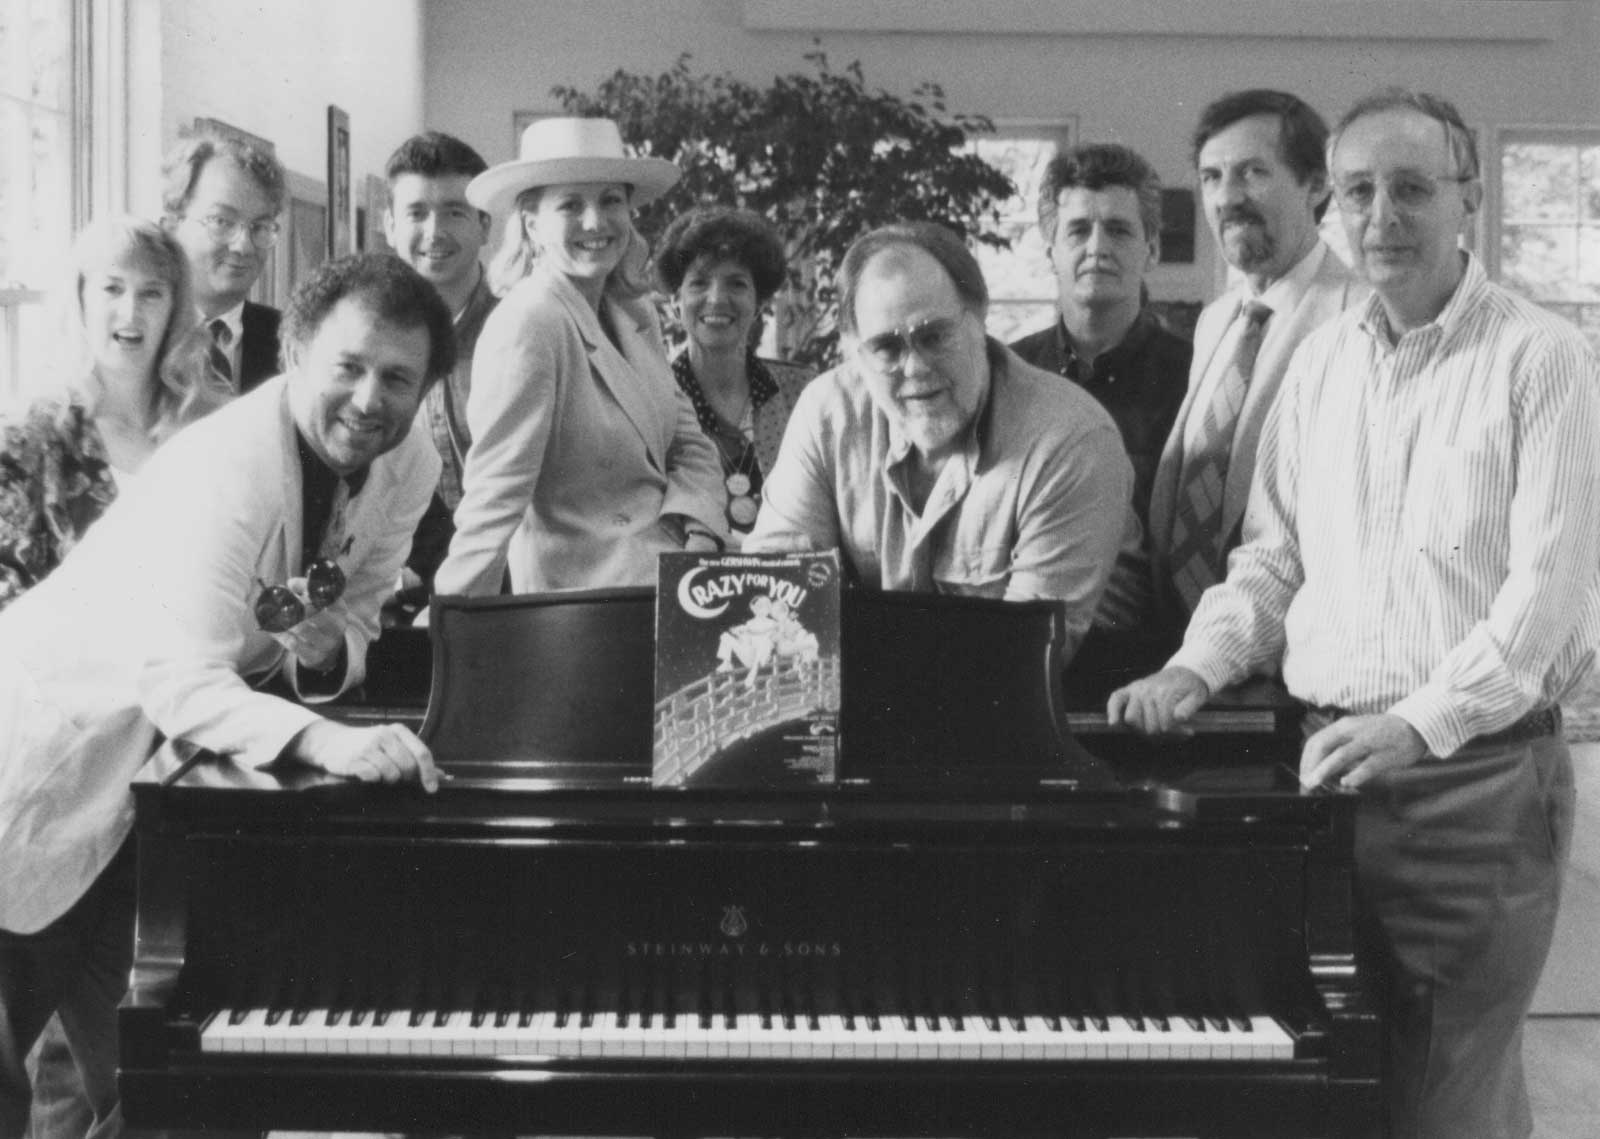 The Creative team of Crazy for You at the home of Producer Roger Horchow. Gershwin himself played that piano.